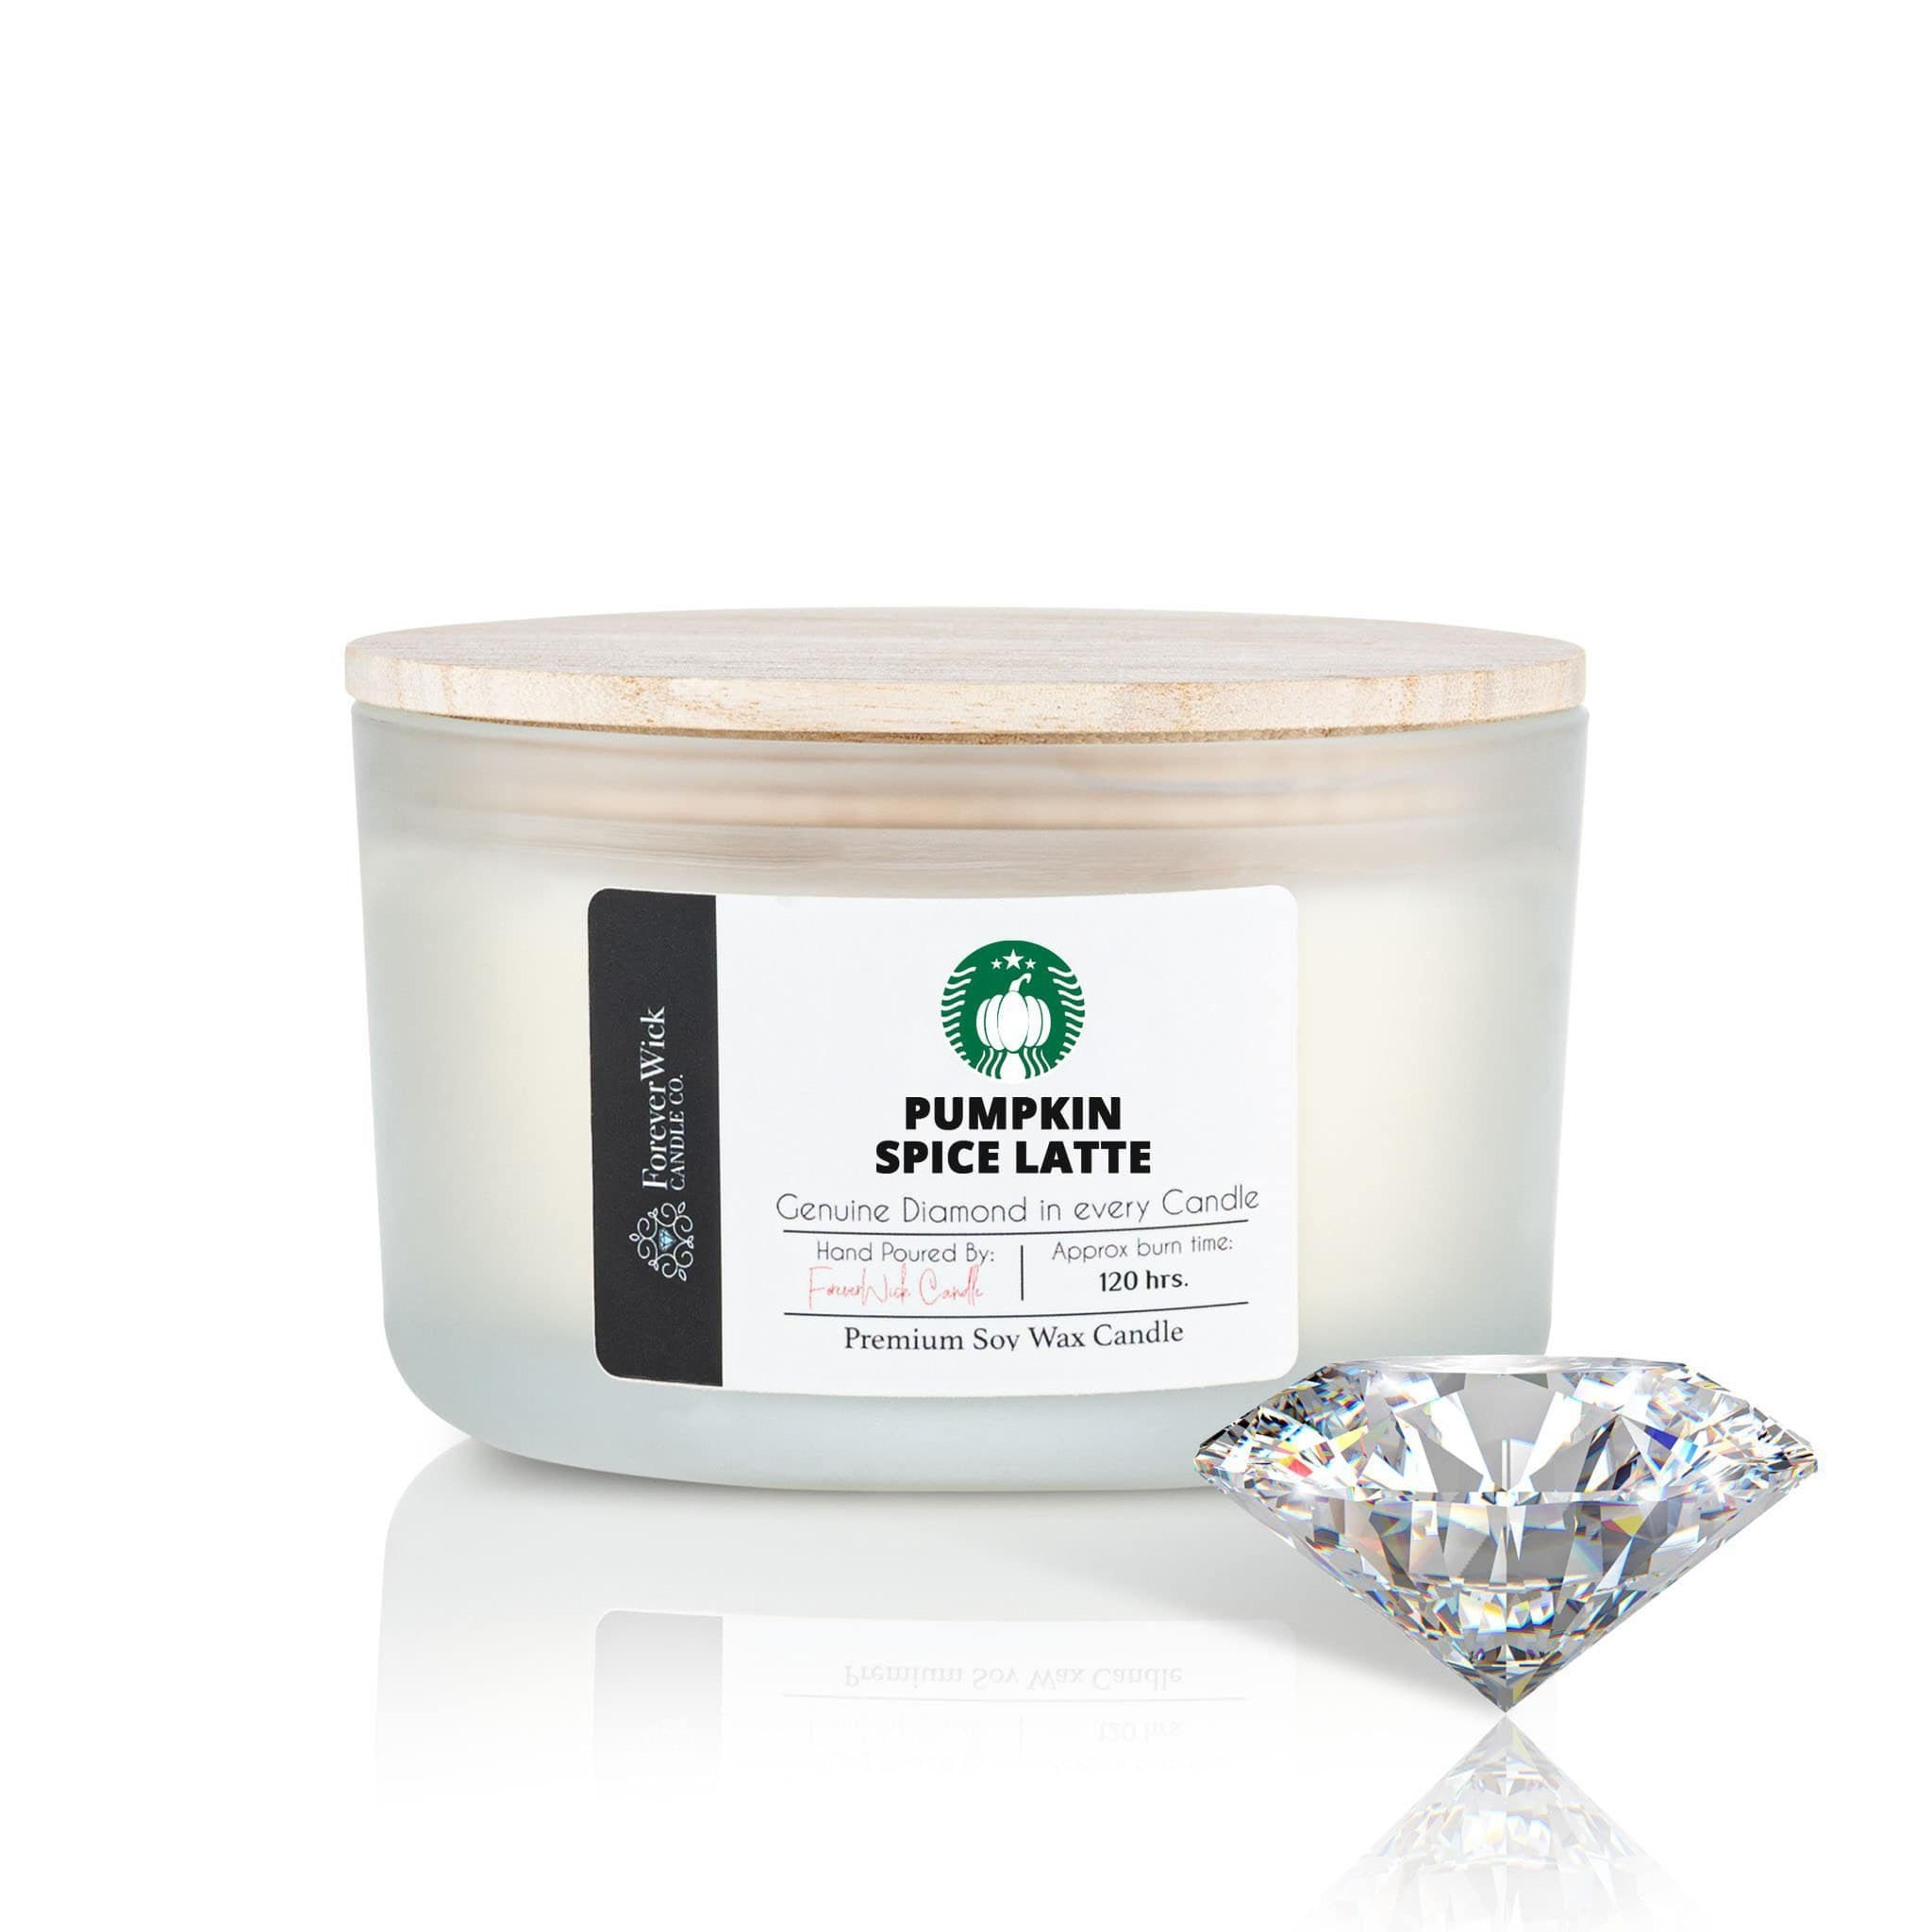 Pumpkin Spice Latte 4 Wick Diamond Candle